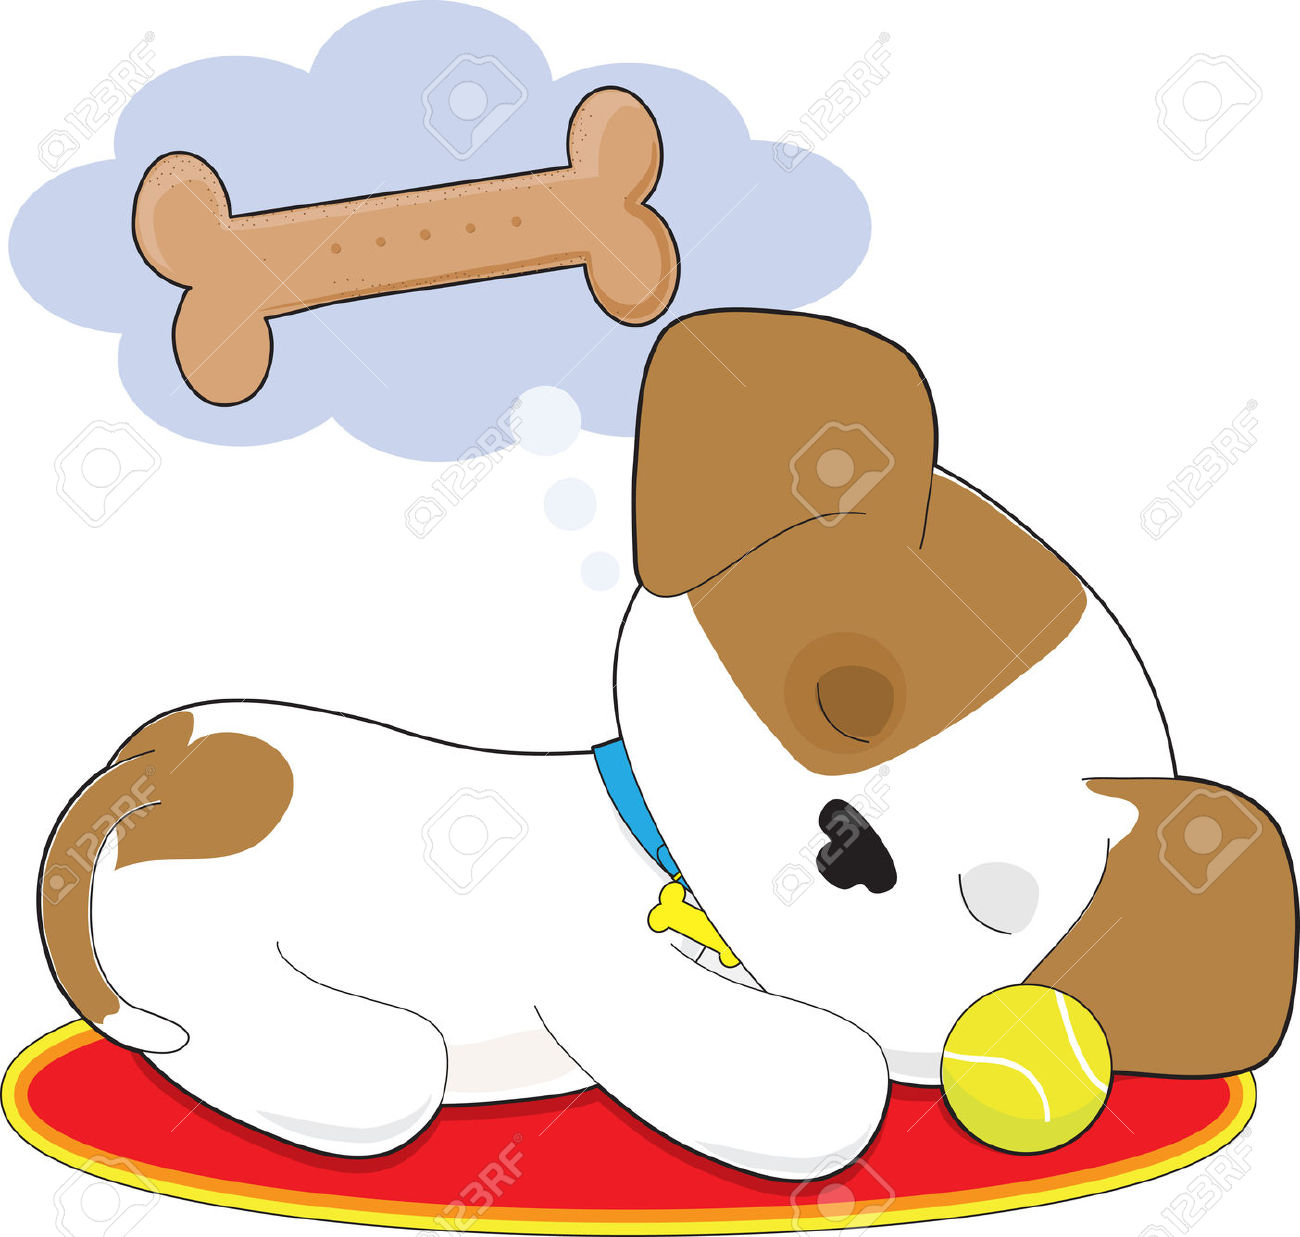 Yorkies clipart poodle Resting Dog Clipart cliparts Puppy